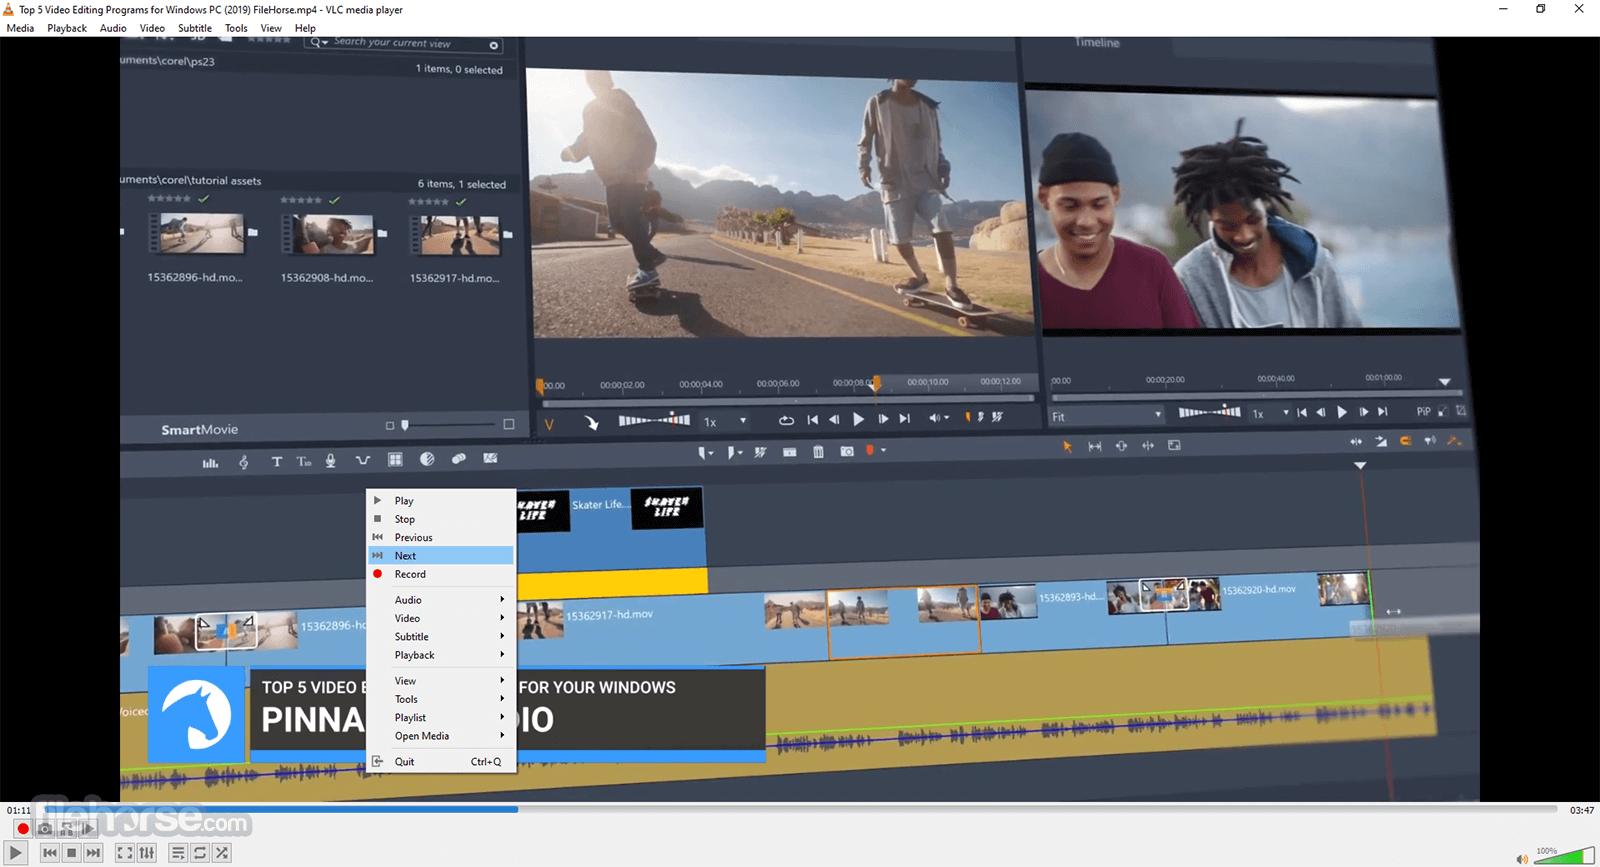 VLC Media Player (64-bit) Download (2020 Latest) for Windows 10, 8, 7